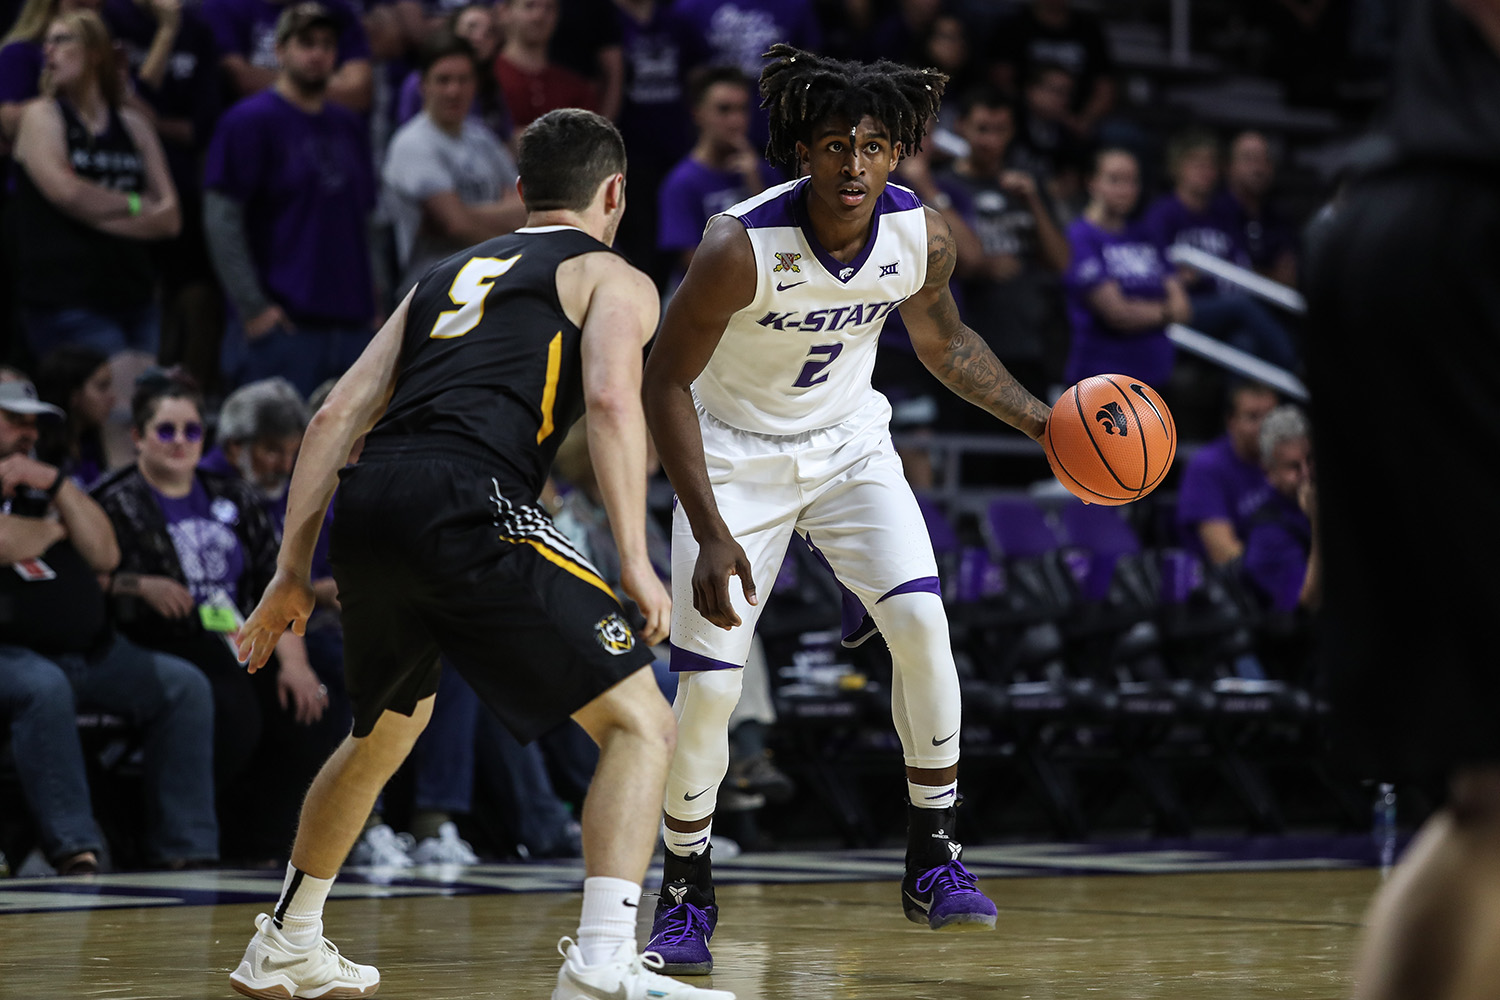 Mawdo Sallah Looks To Pass The Ball During The Mens Basketball Game Between Fort Hays State University And Kansas State University At Bramlage Coliseum In